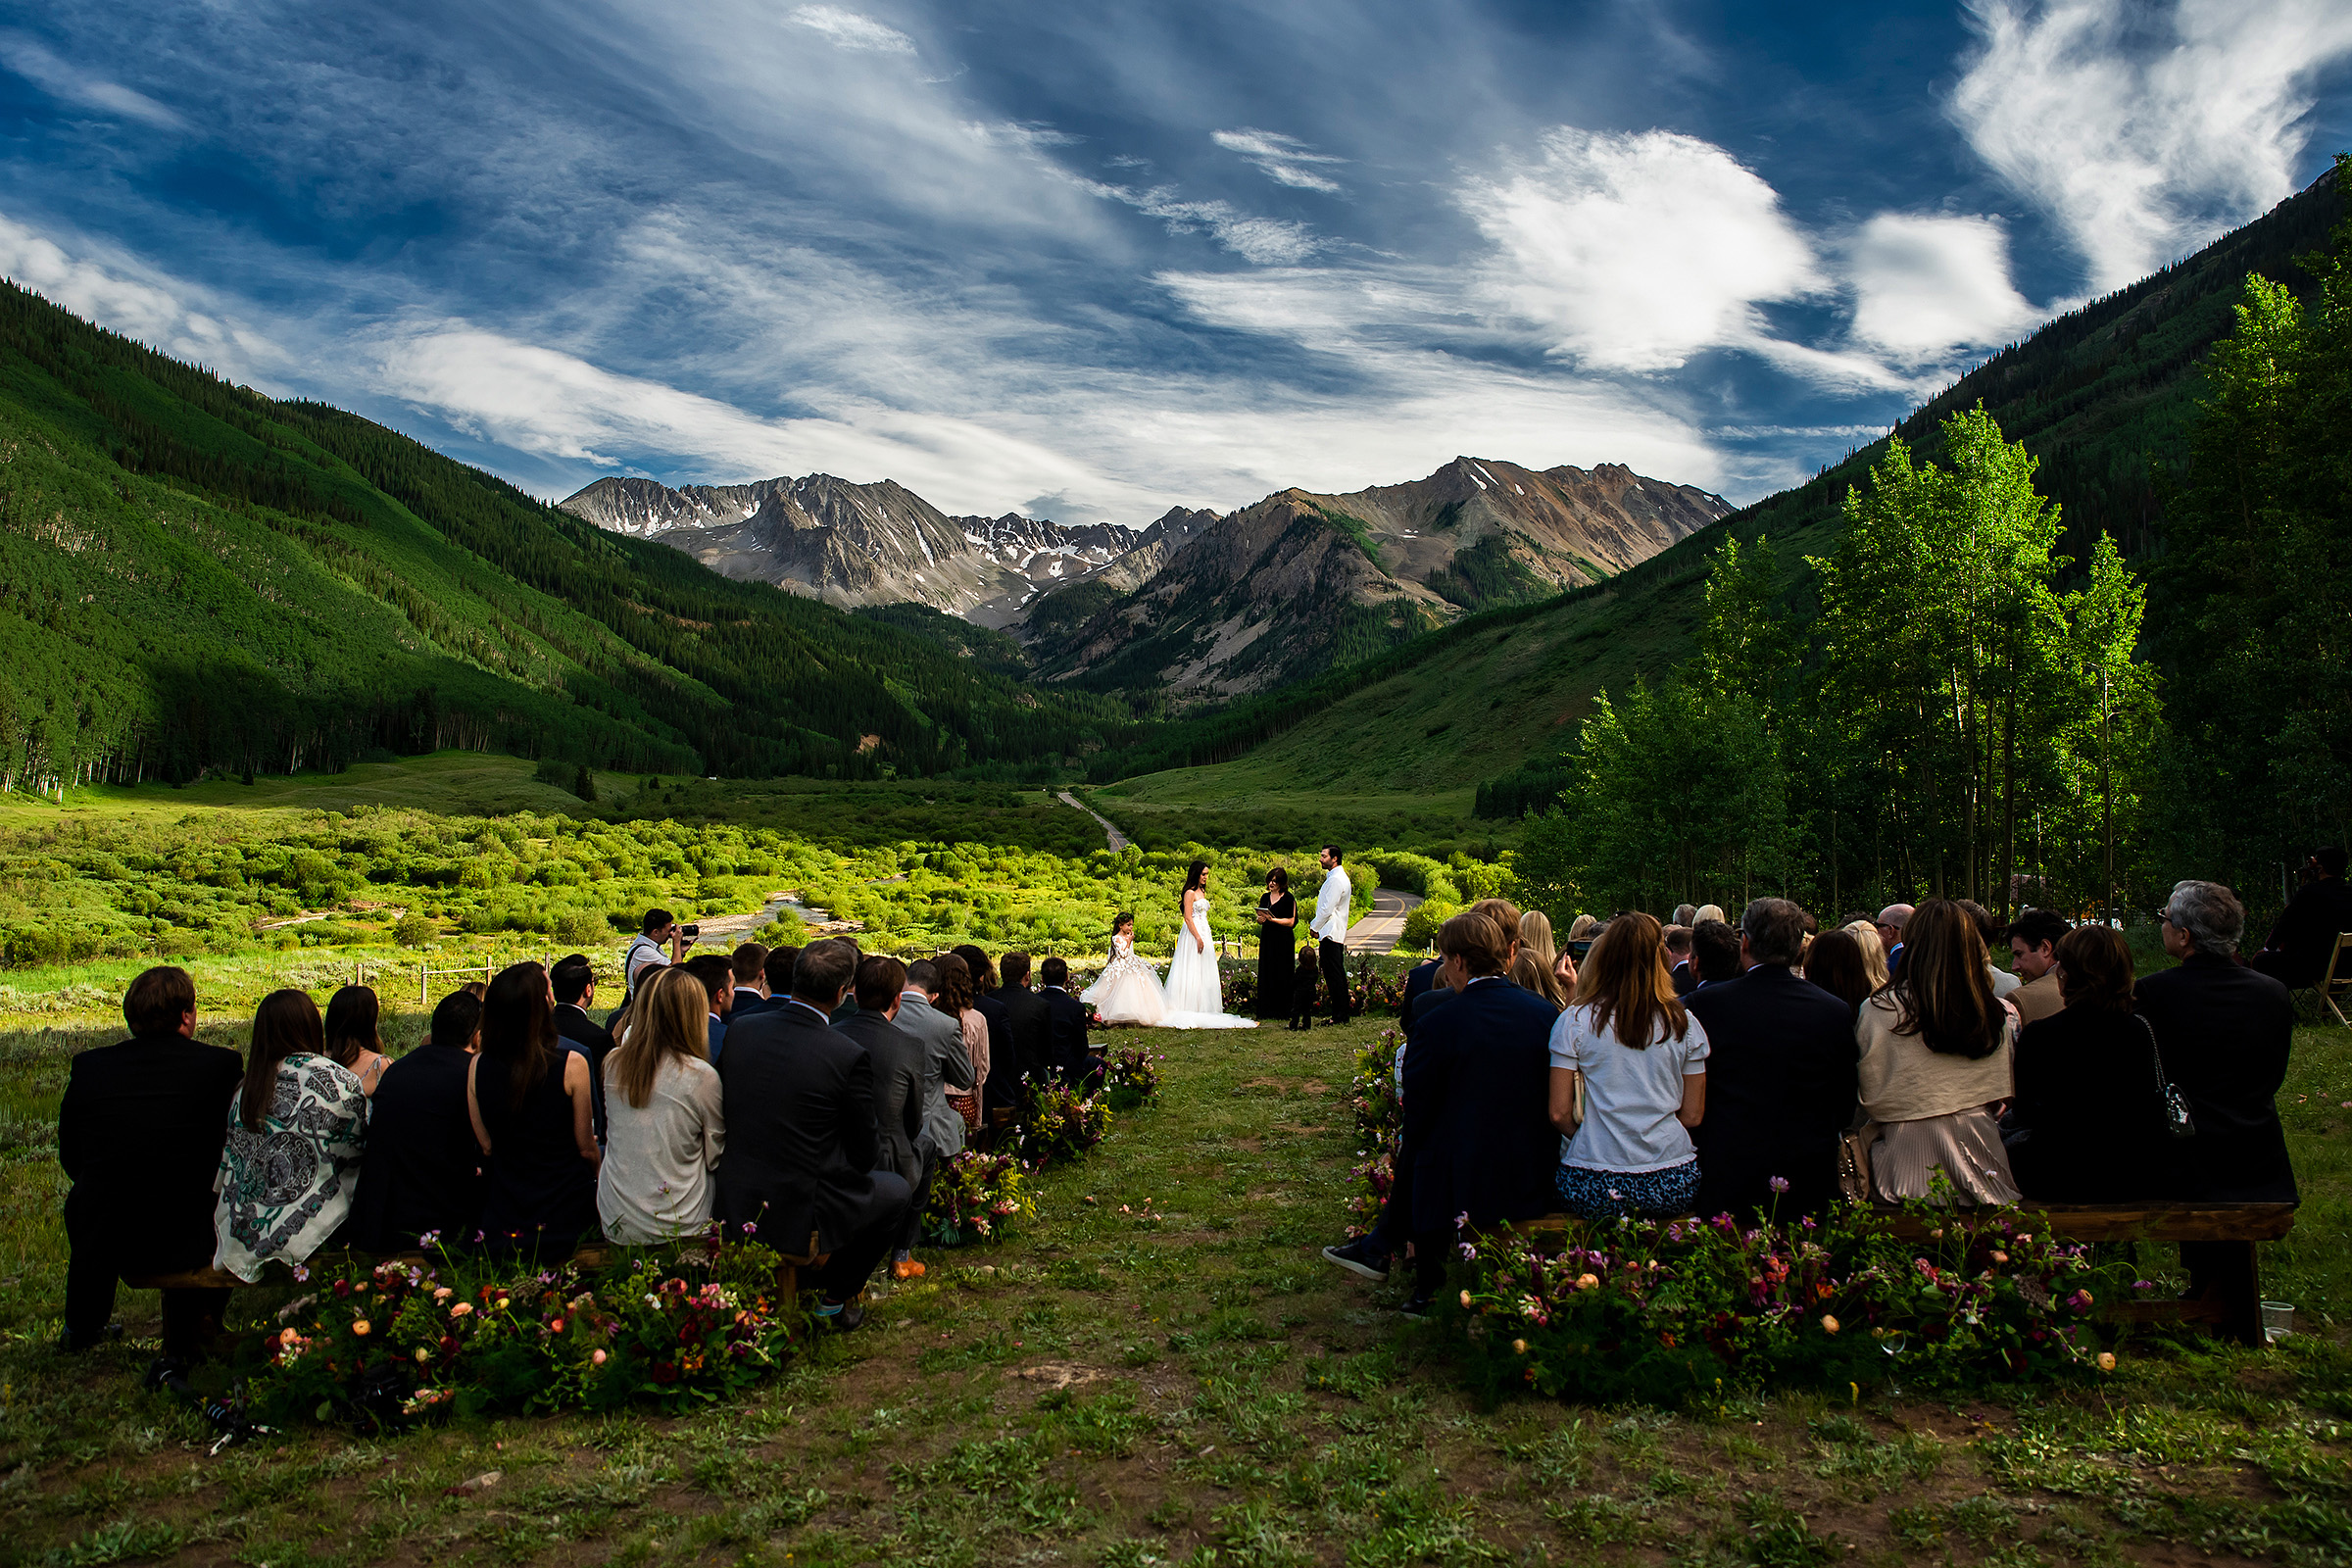 Wedding ceremony against mountains in Colorado's Pine Creek Cookhouse - photo by J. La Plante Photo